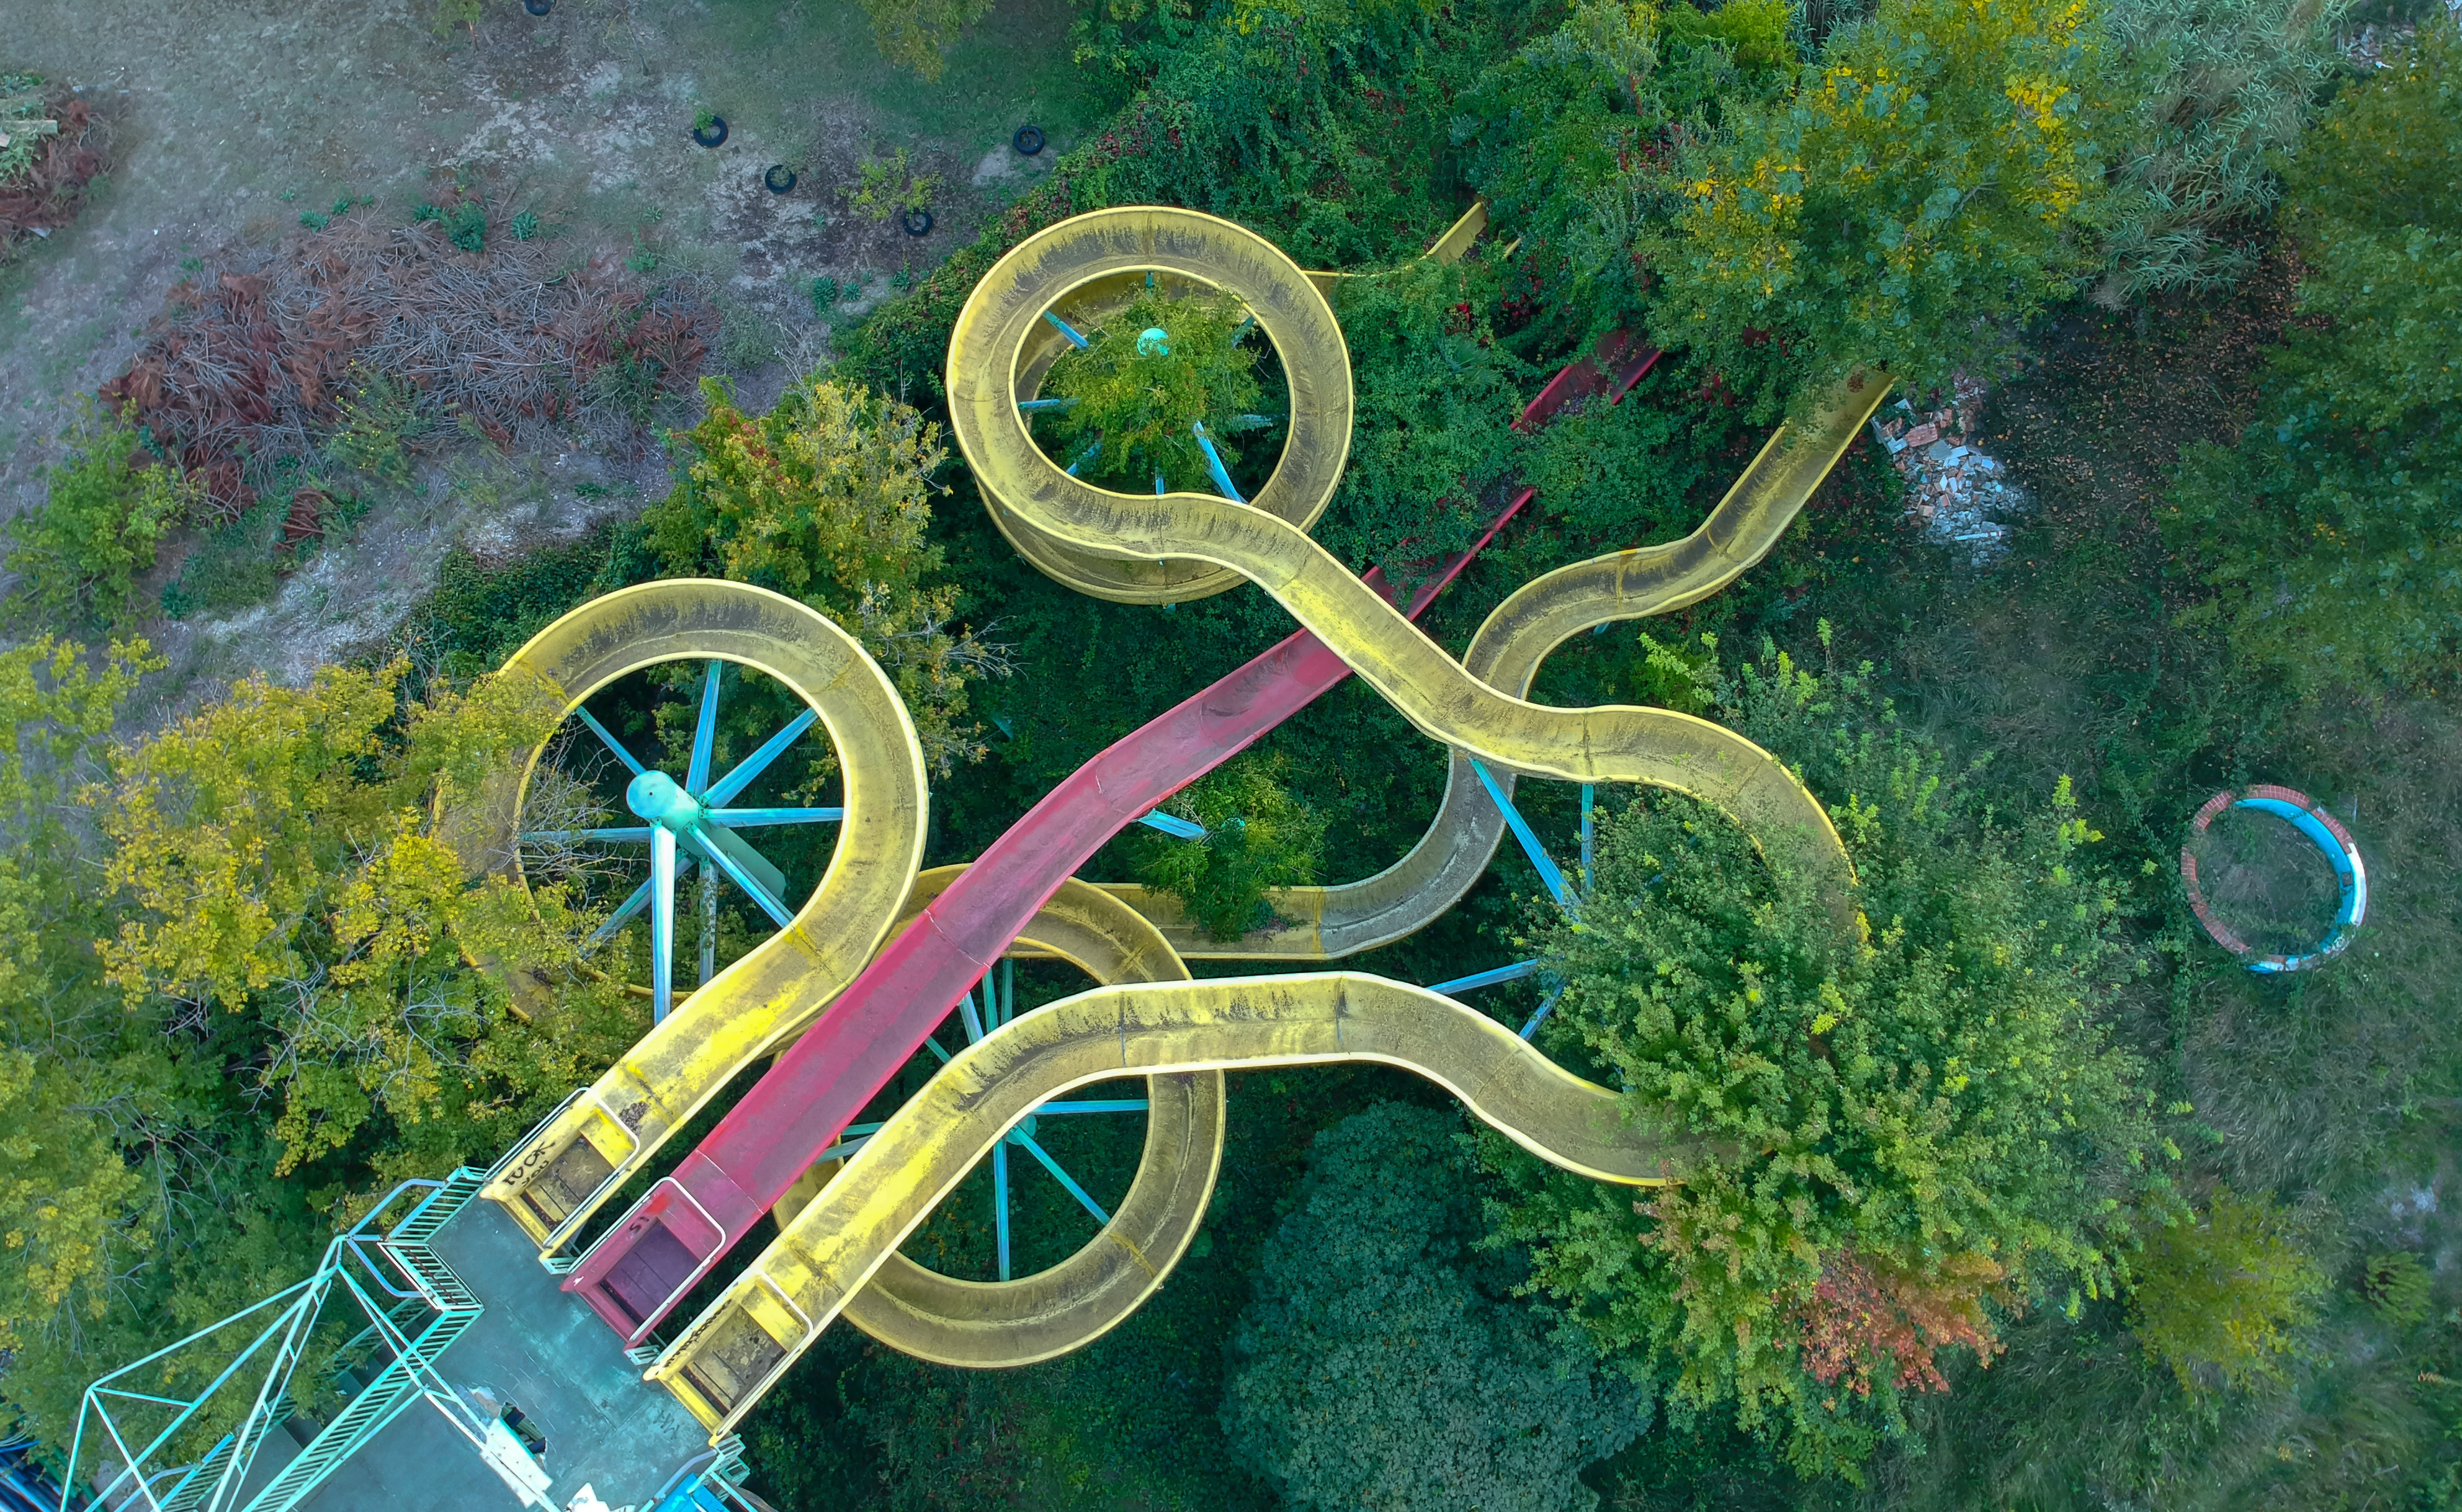 yellow and red metal slides surrounded by green trees at daytime